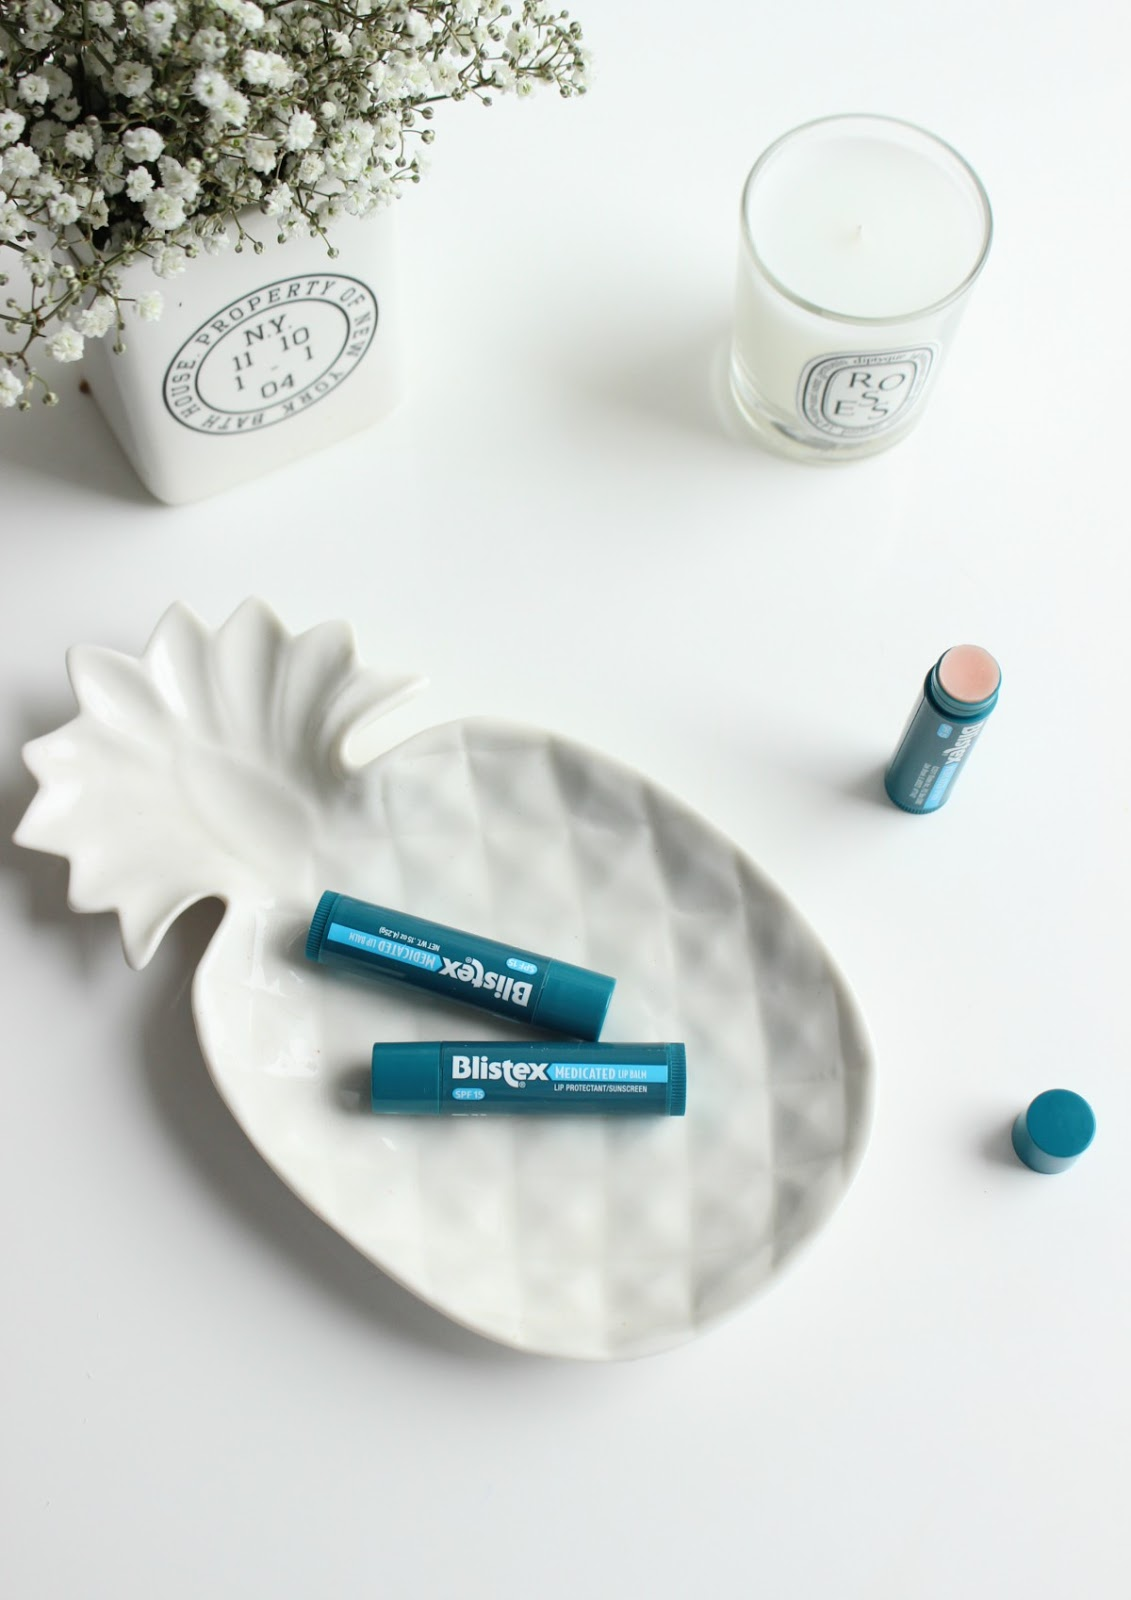 Blistex Medicated Lip Balm